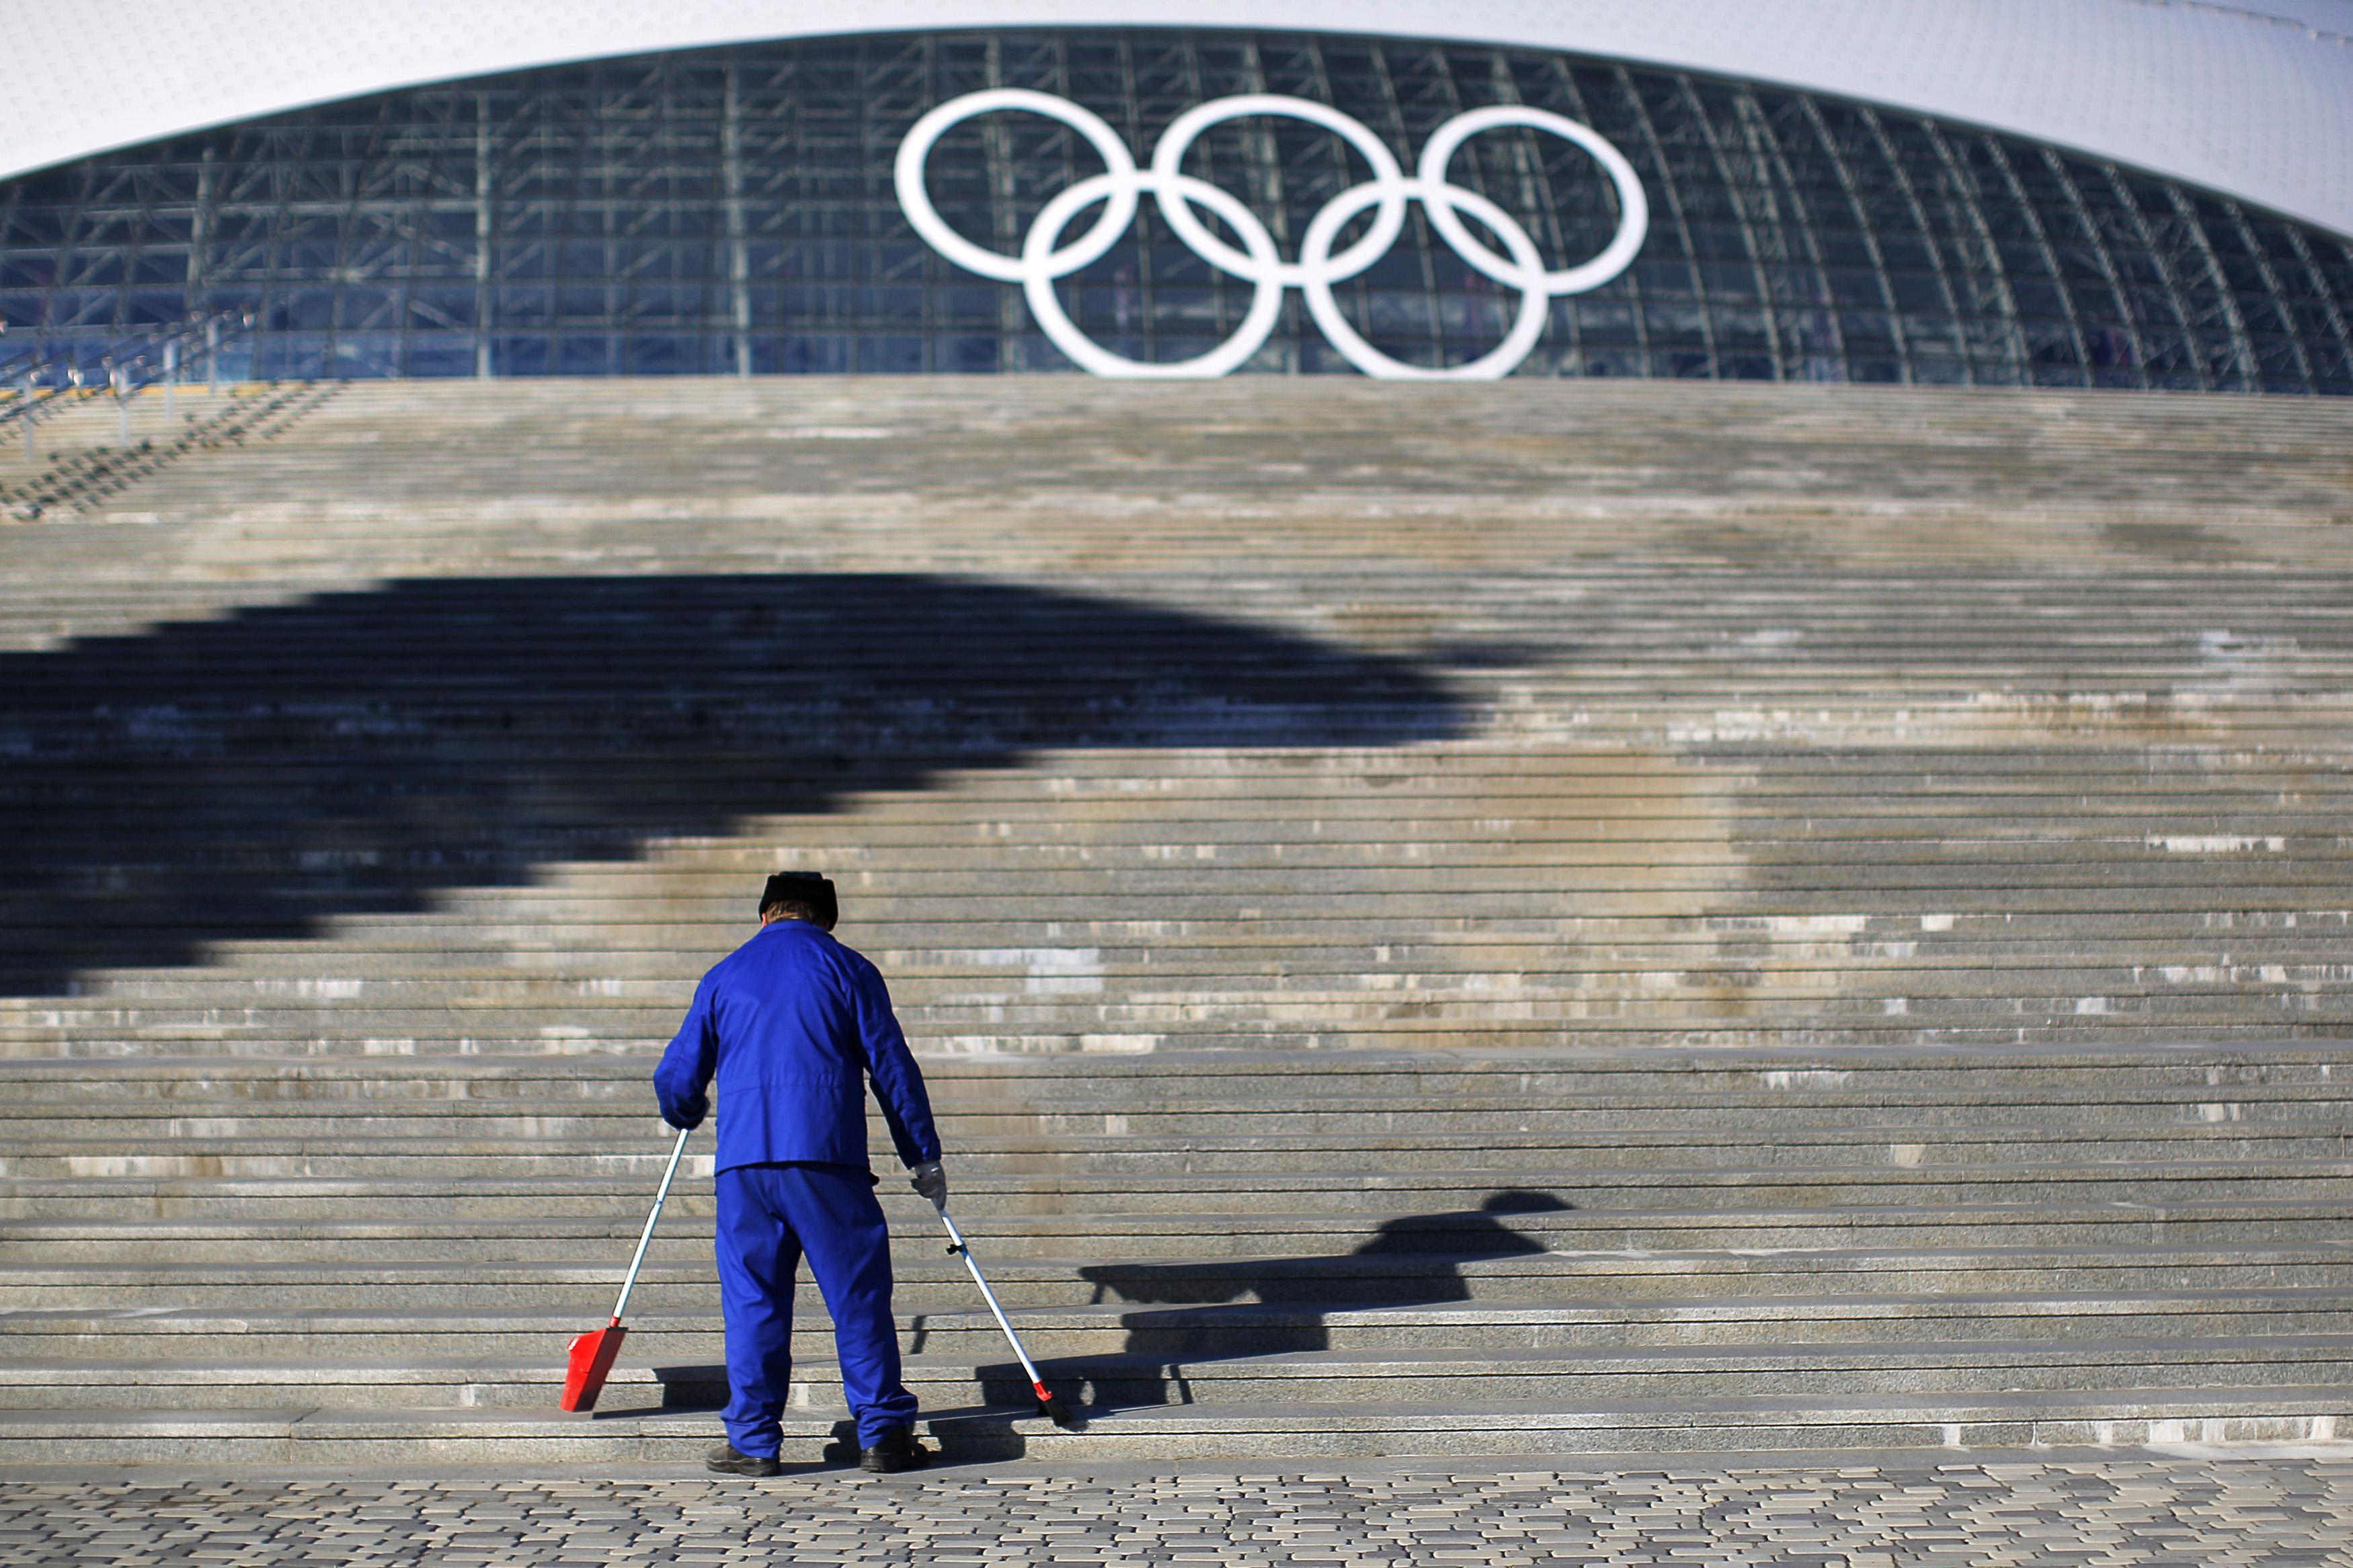 Sochi Olympic Stairs